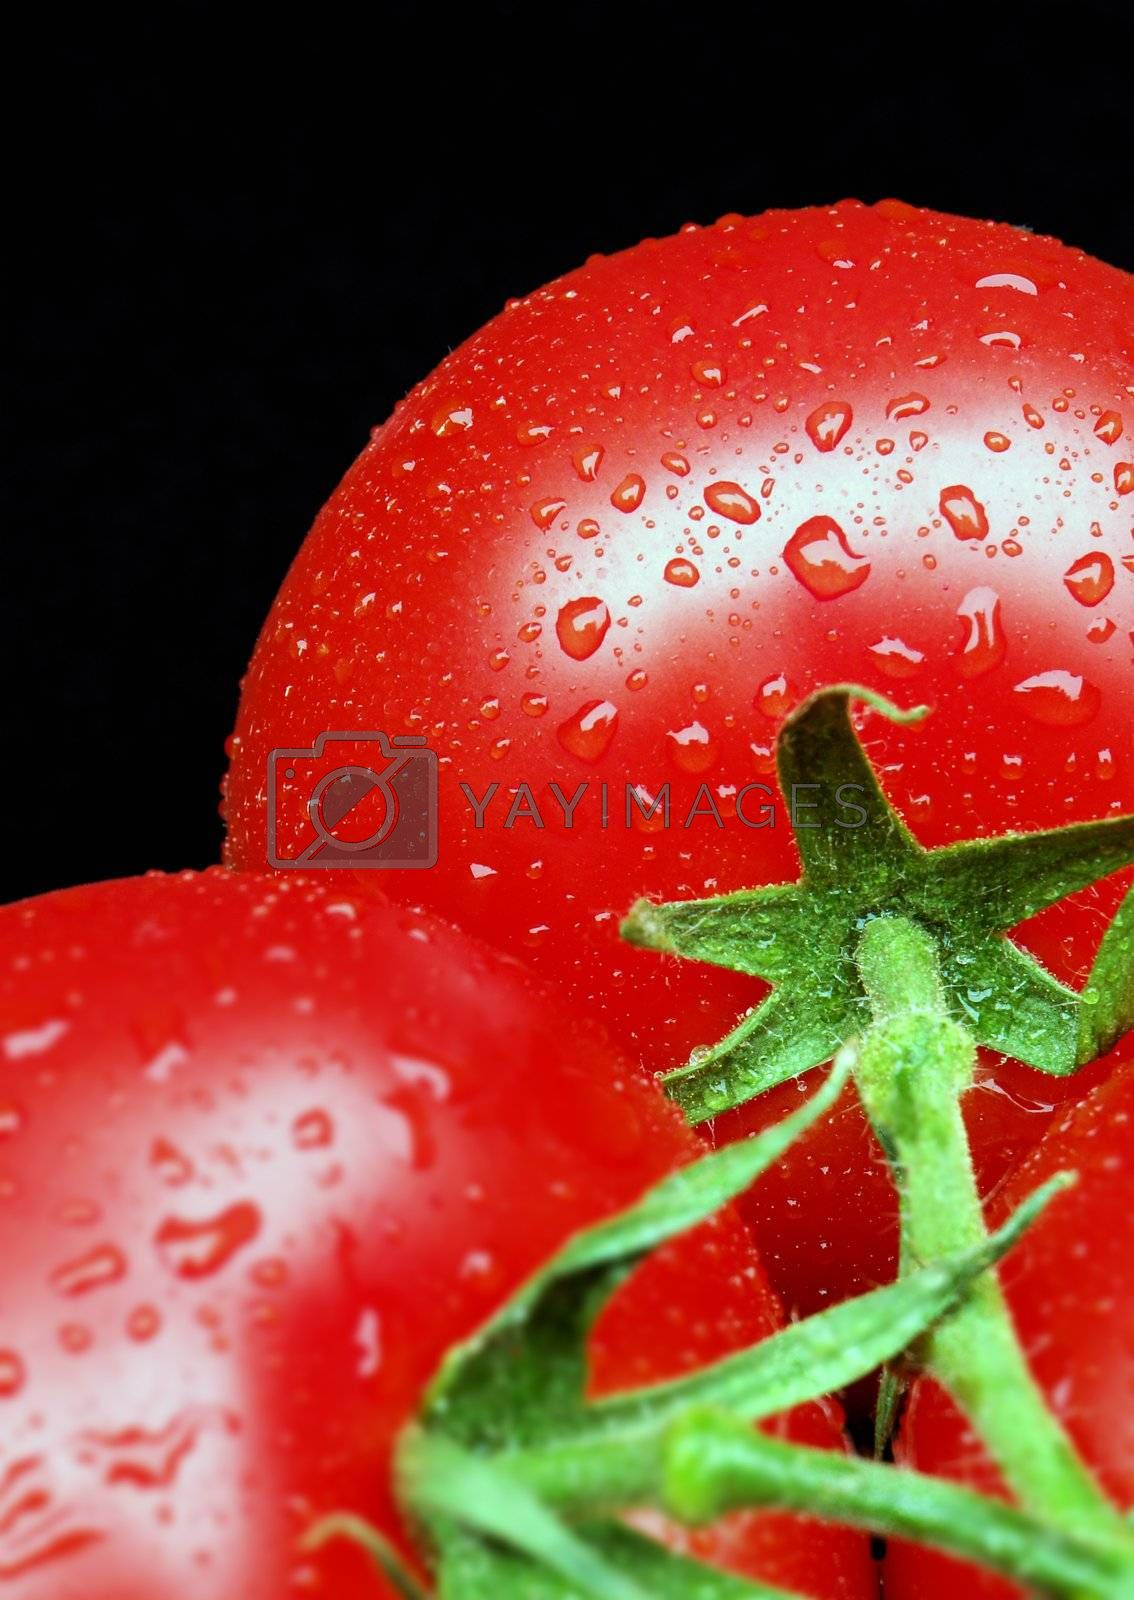 Tomatoes on Vine by massman